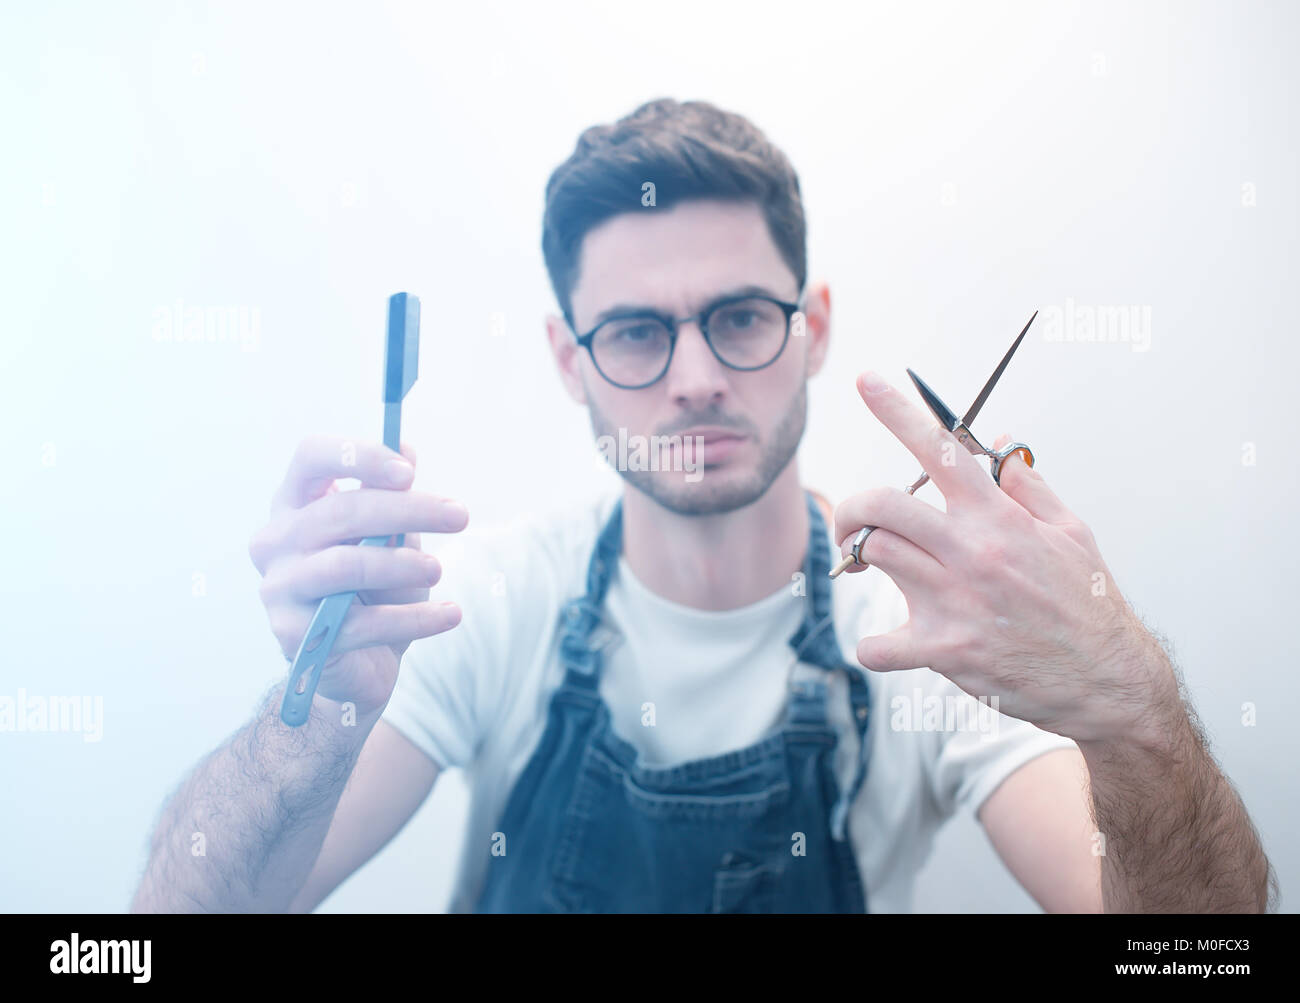 Barber keeps scissors and a razor against the background of a white wall. Focus on tools. - Stock Image